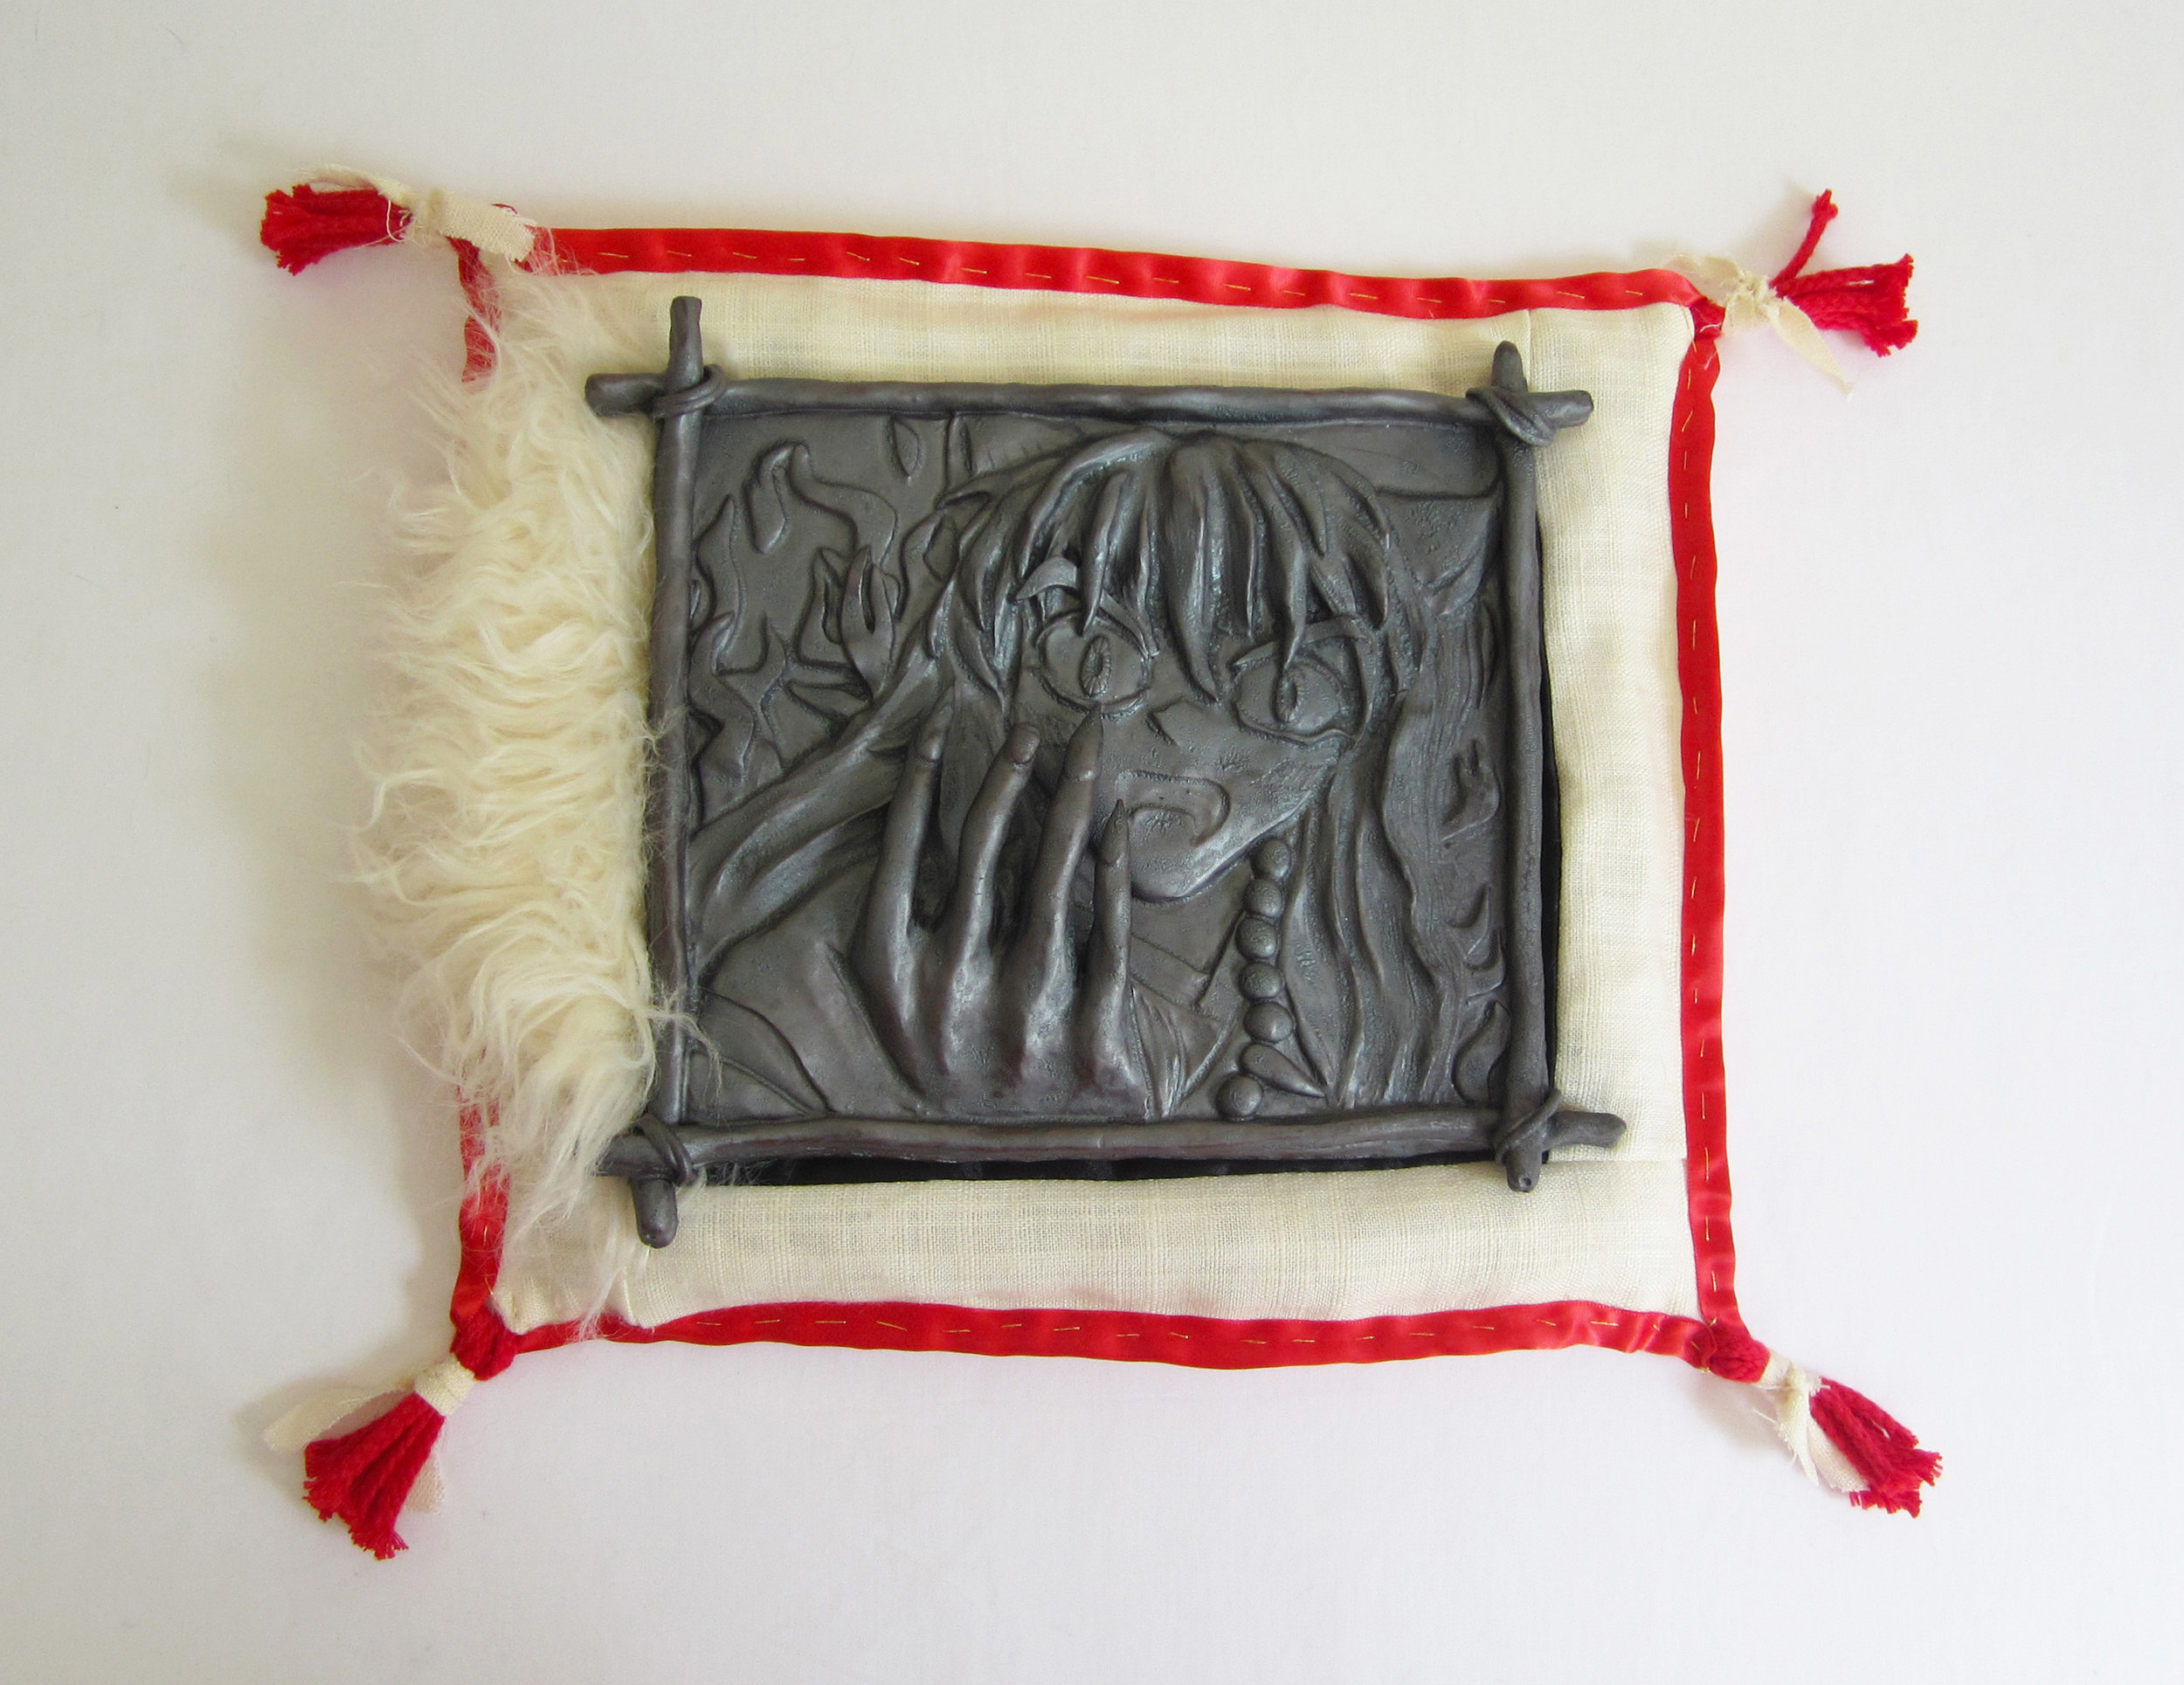 Inuyasha, 2017  glazed porcelain, linen, satin, satin ribbon, cotton cord, faux fur, cotton scrap stuffing  13 x 15 x 2 1/2 inches